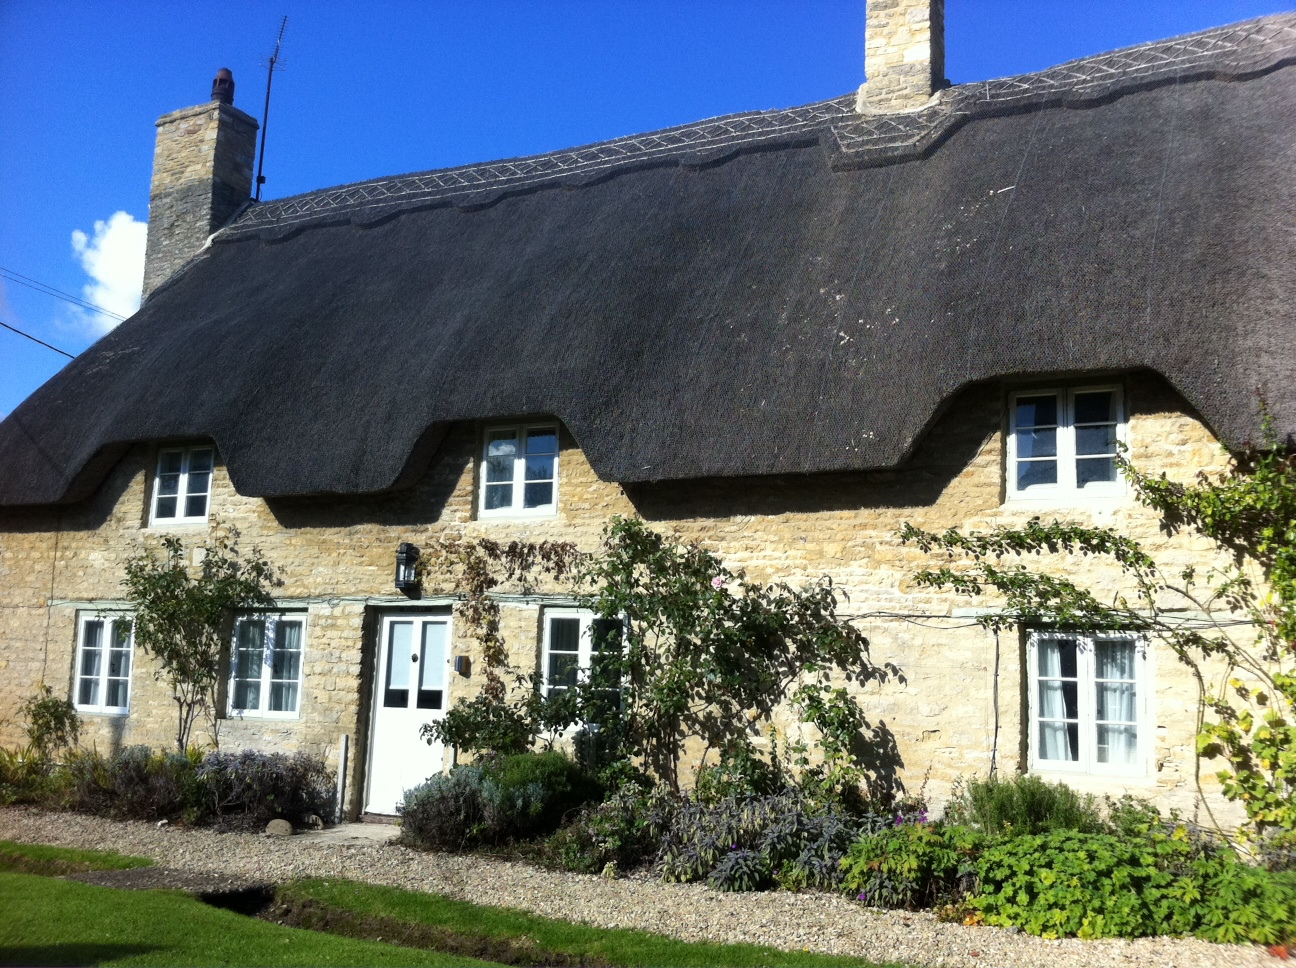 Thatched writing a business